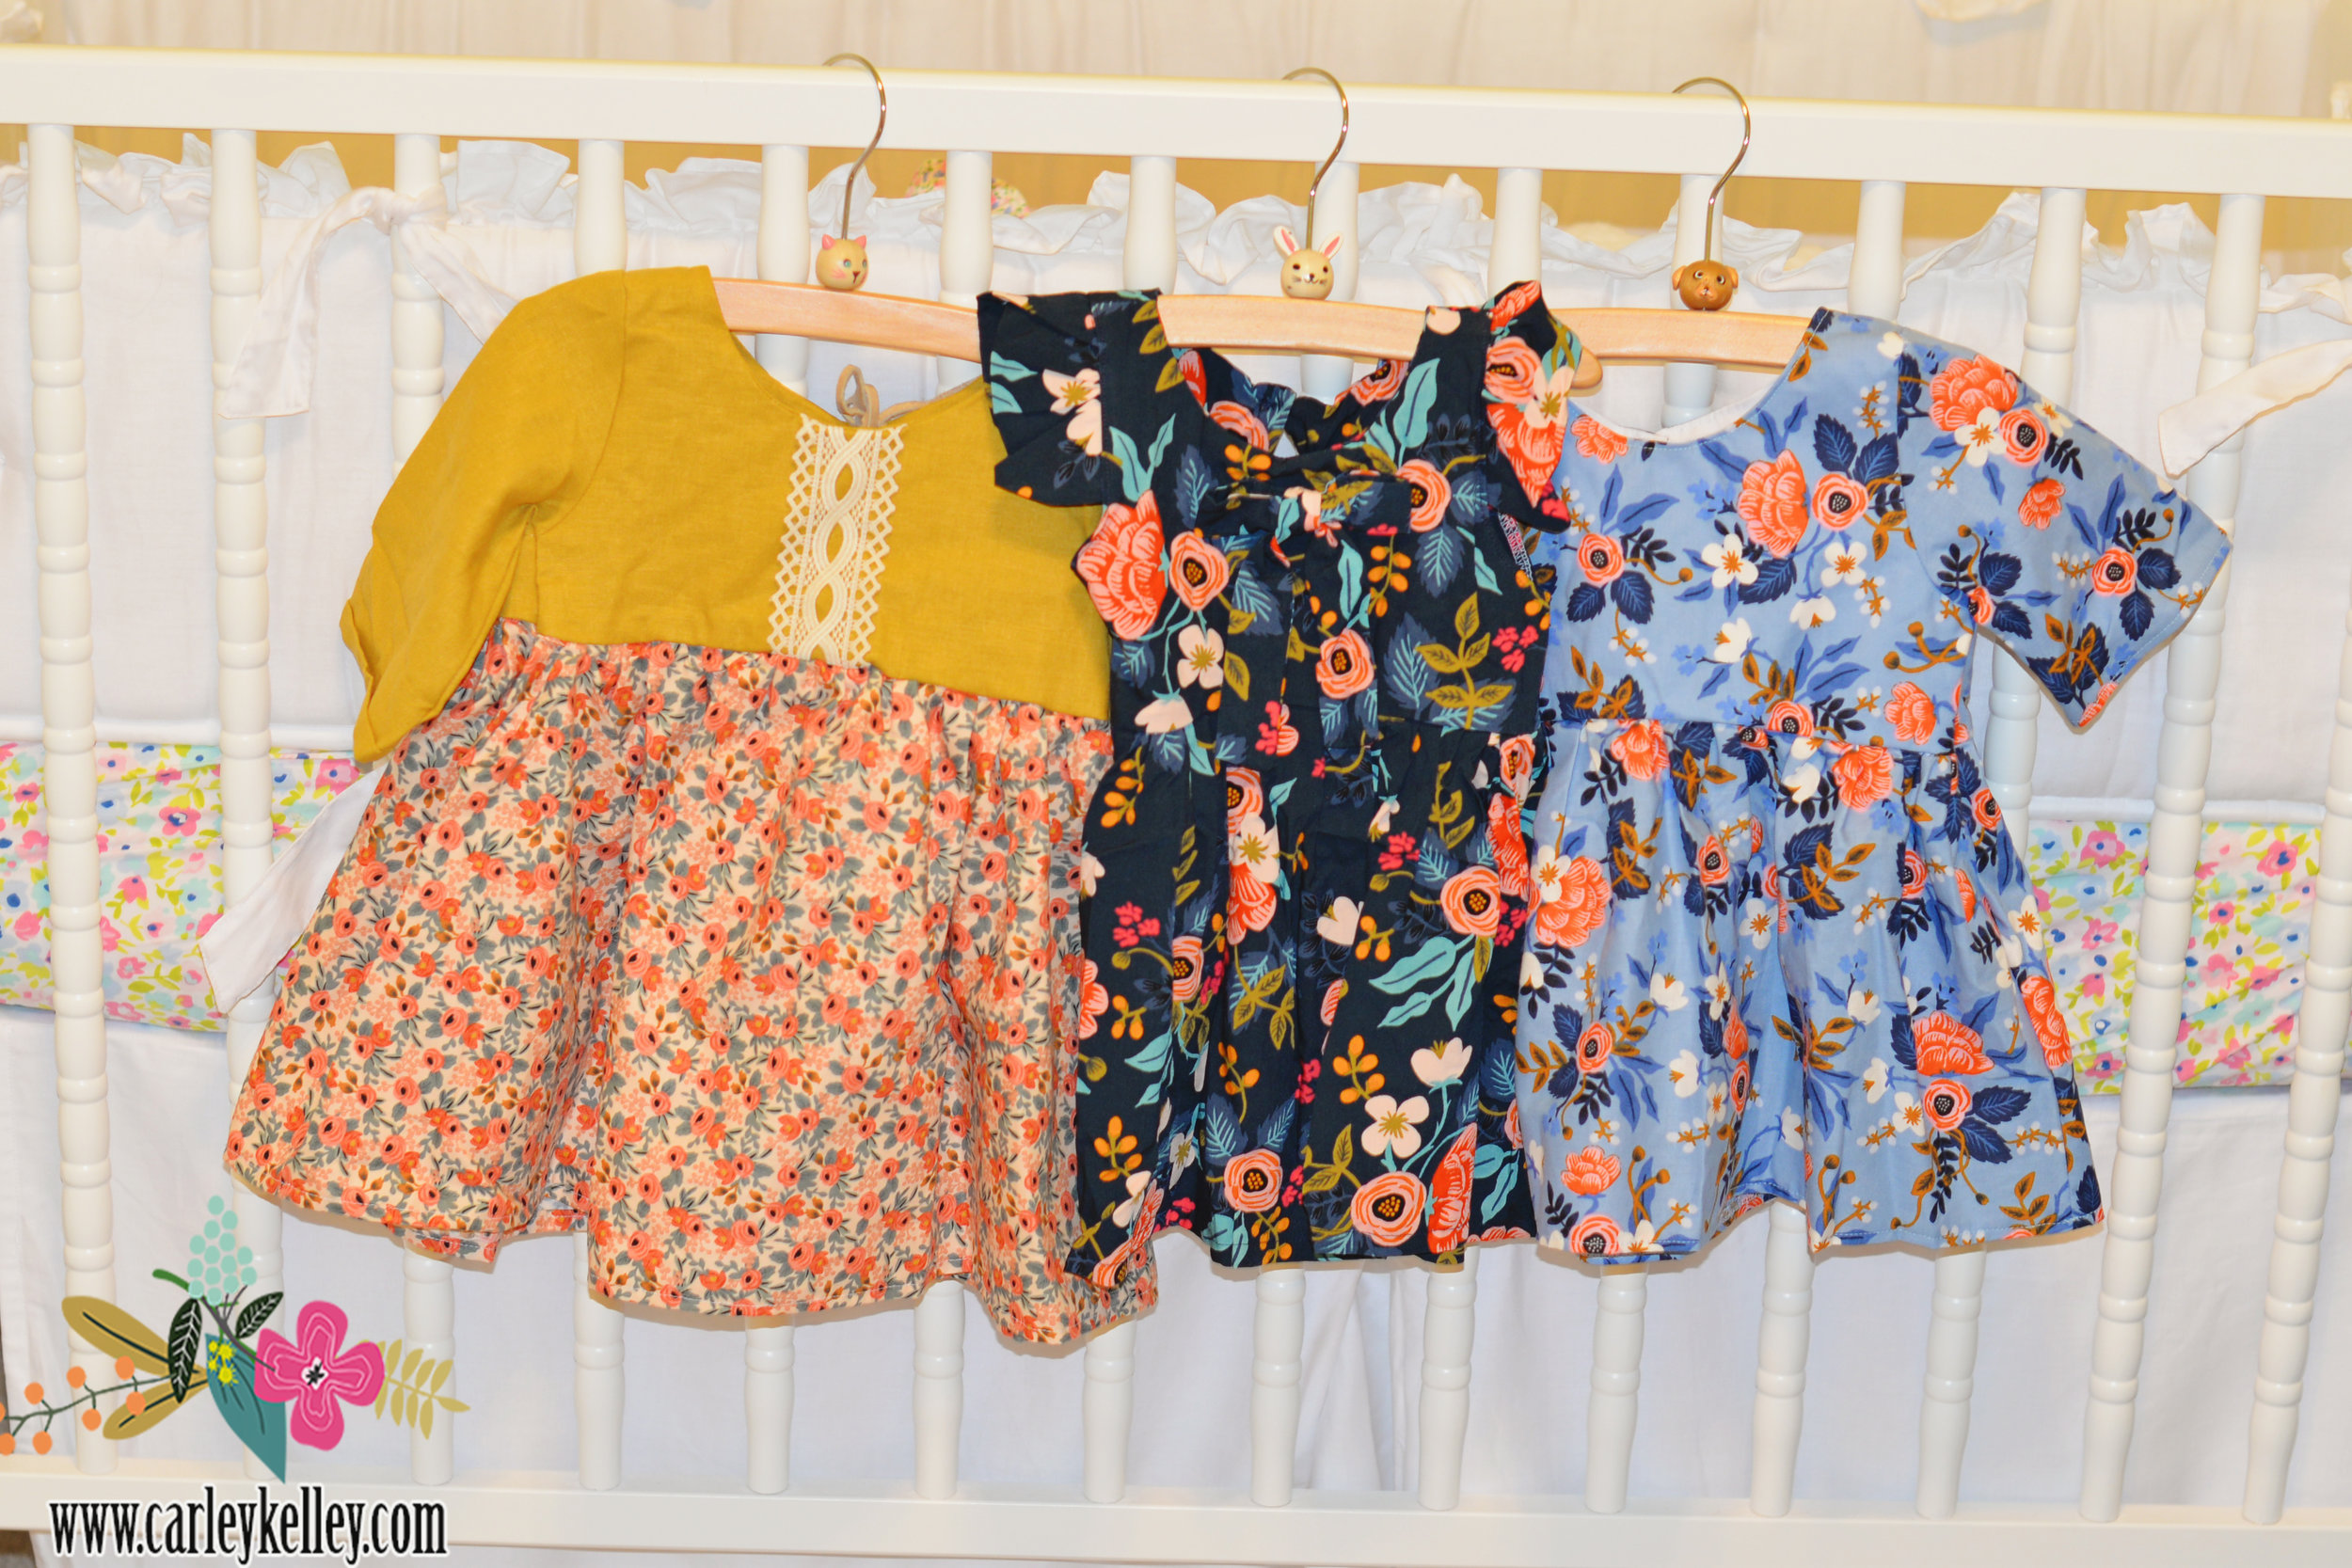 The sweetest Rifle Paper dresses from Peyton's Lane on Etsy that I got fro Lucy Mae. They are currently sold out but she is restocking in September.